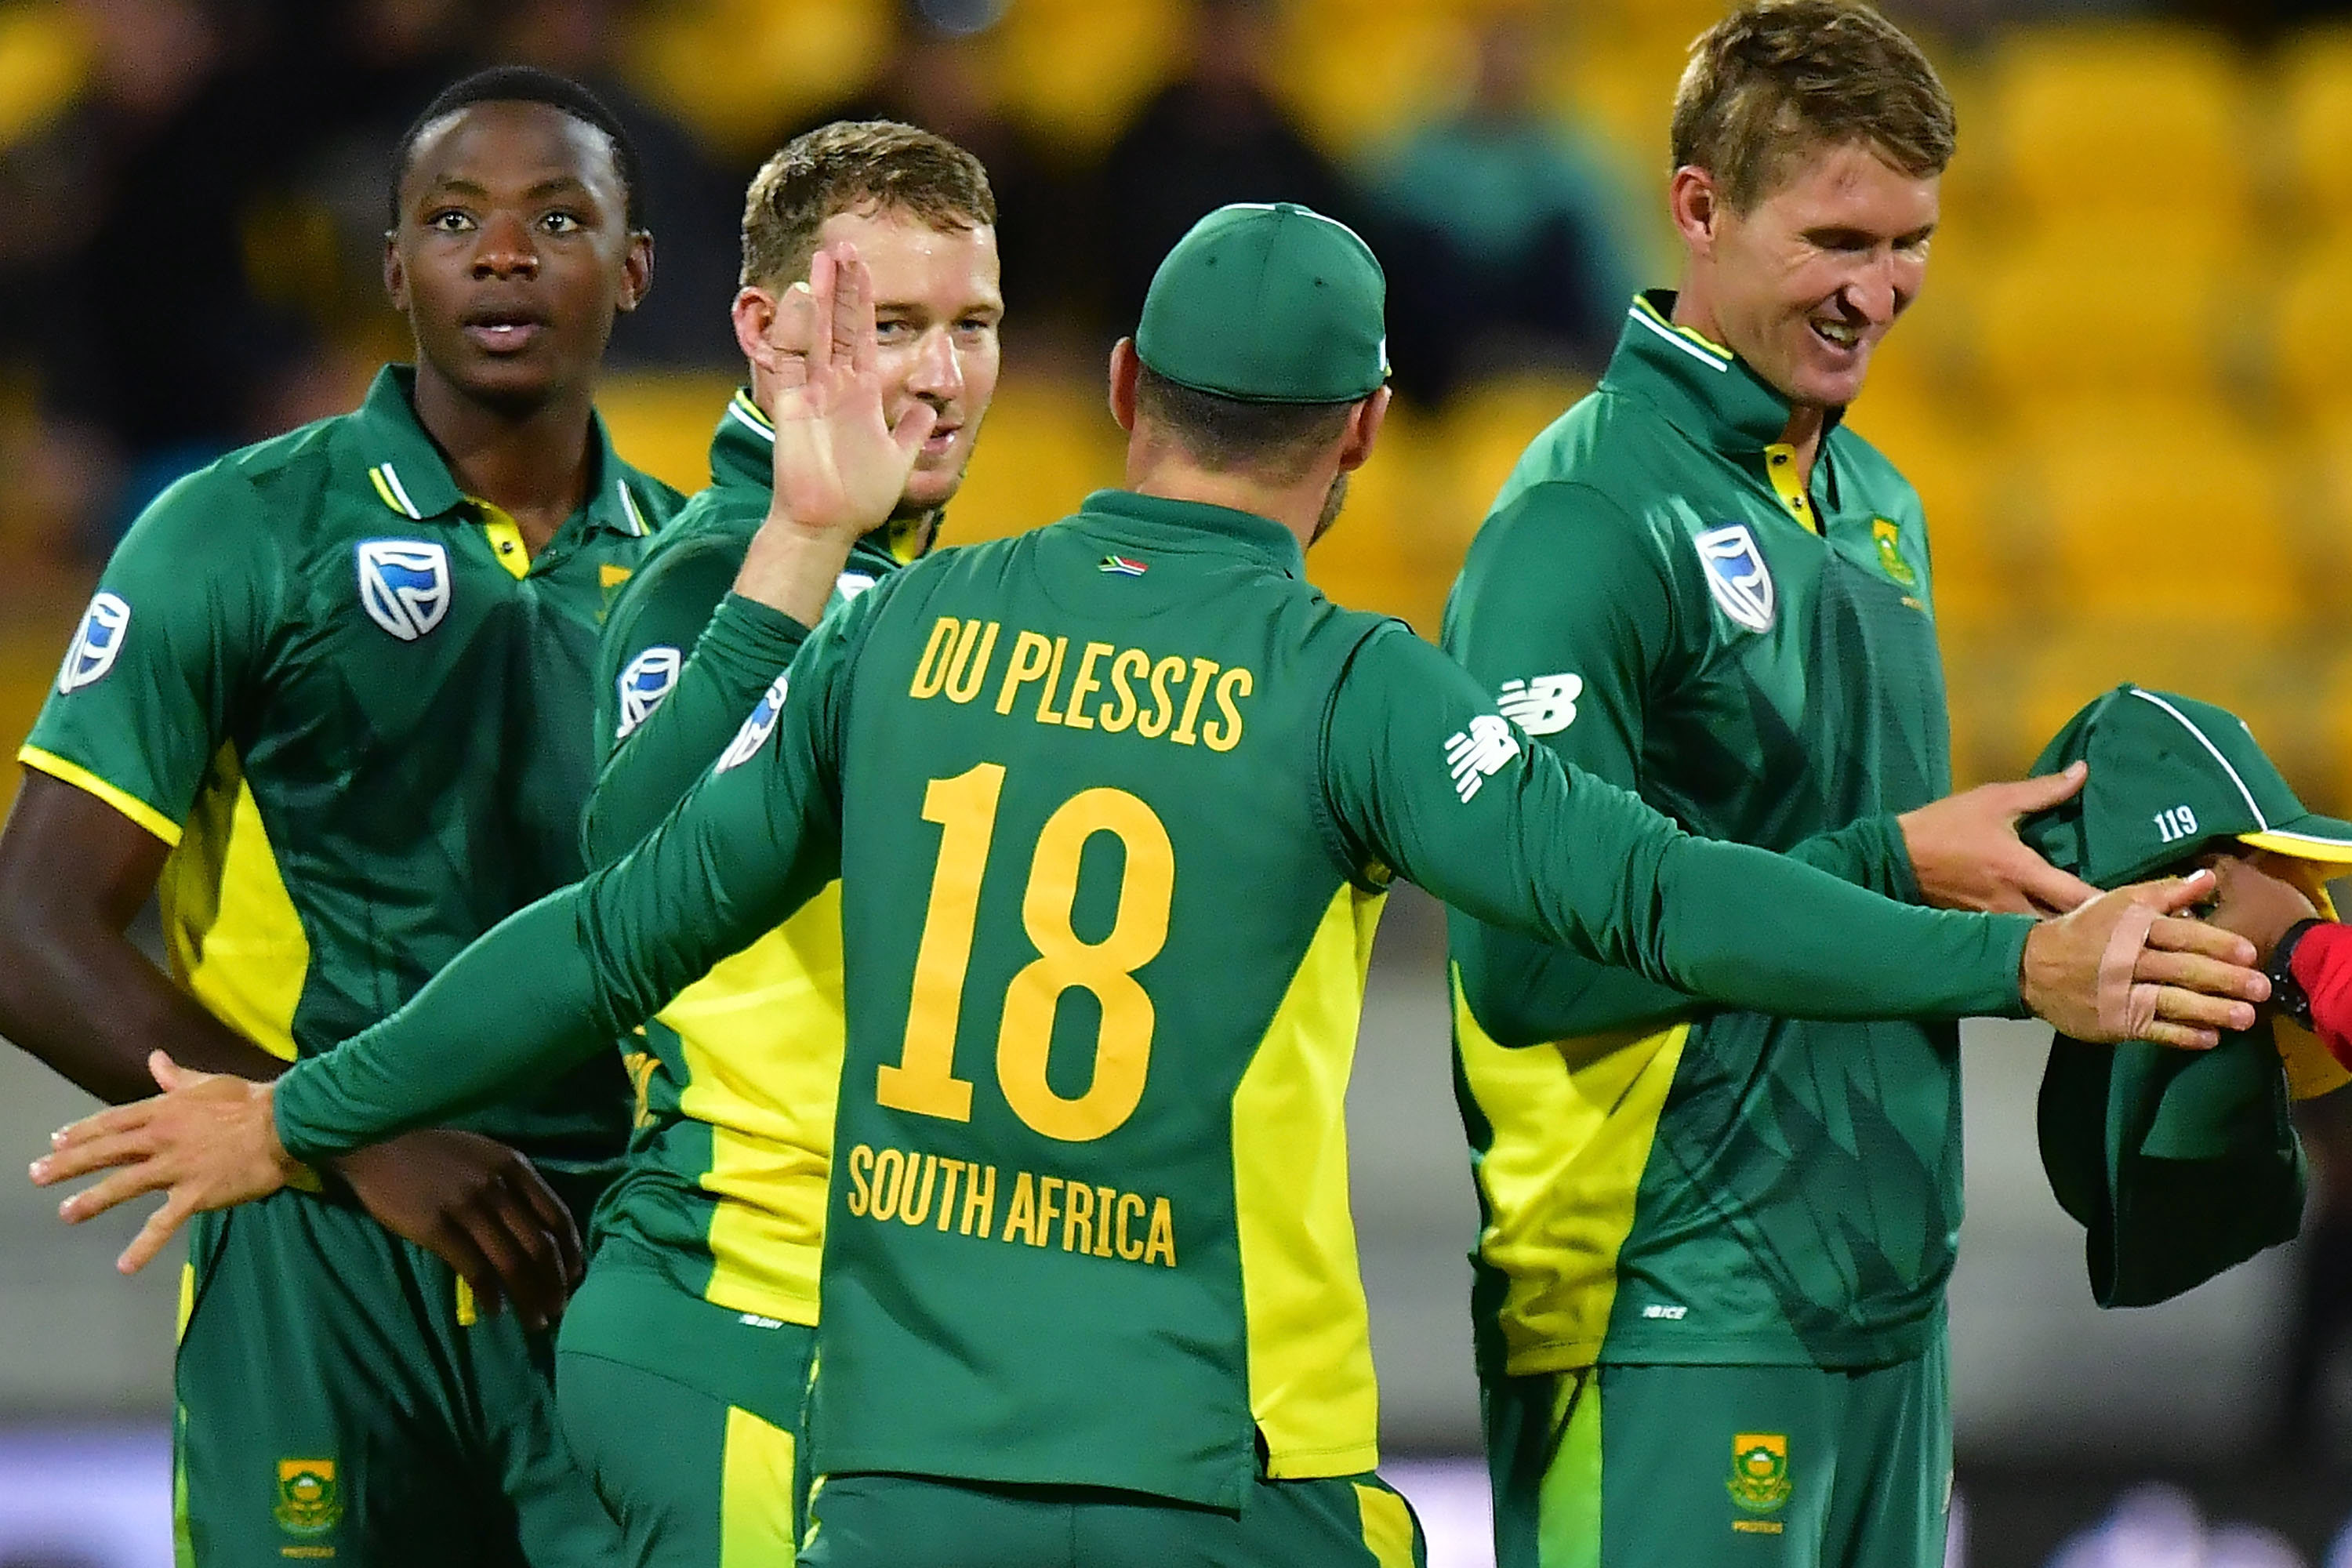 De Villiers record sets up thumping win over New Zealand